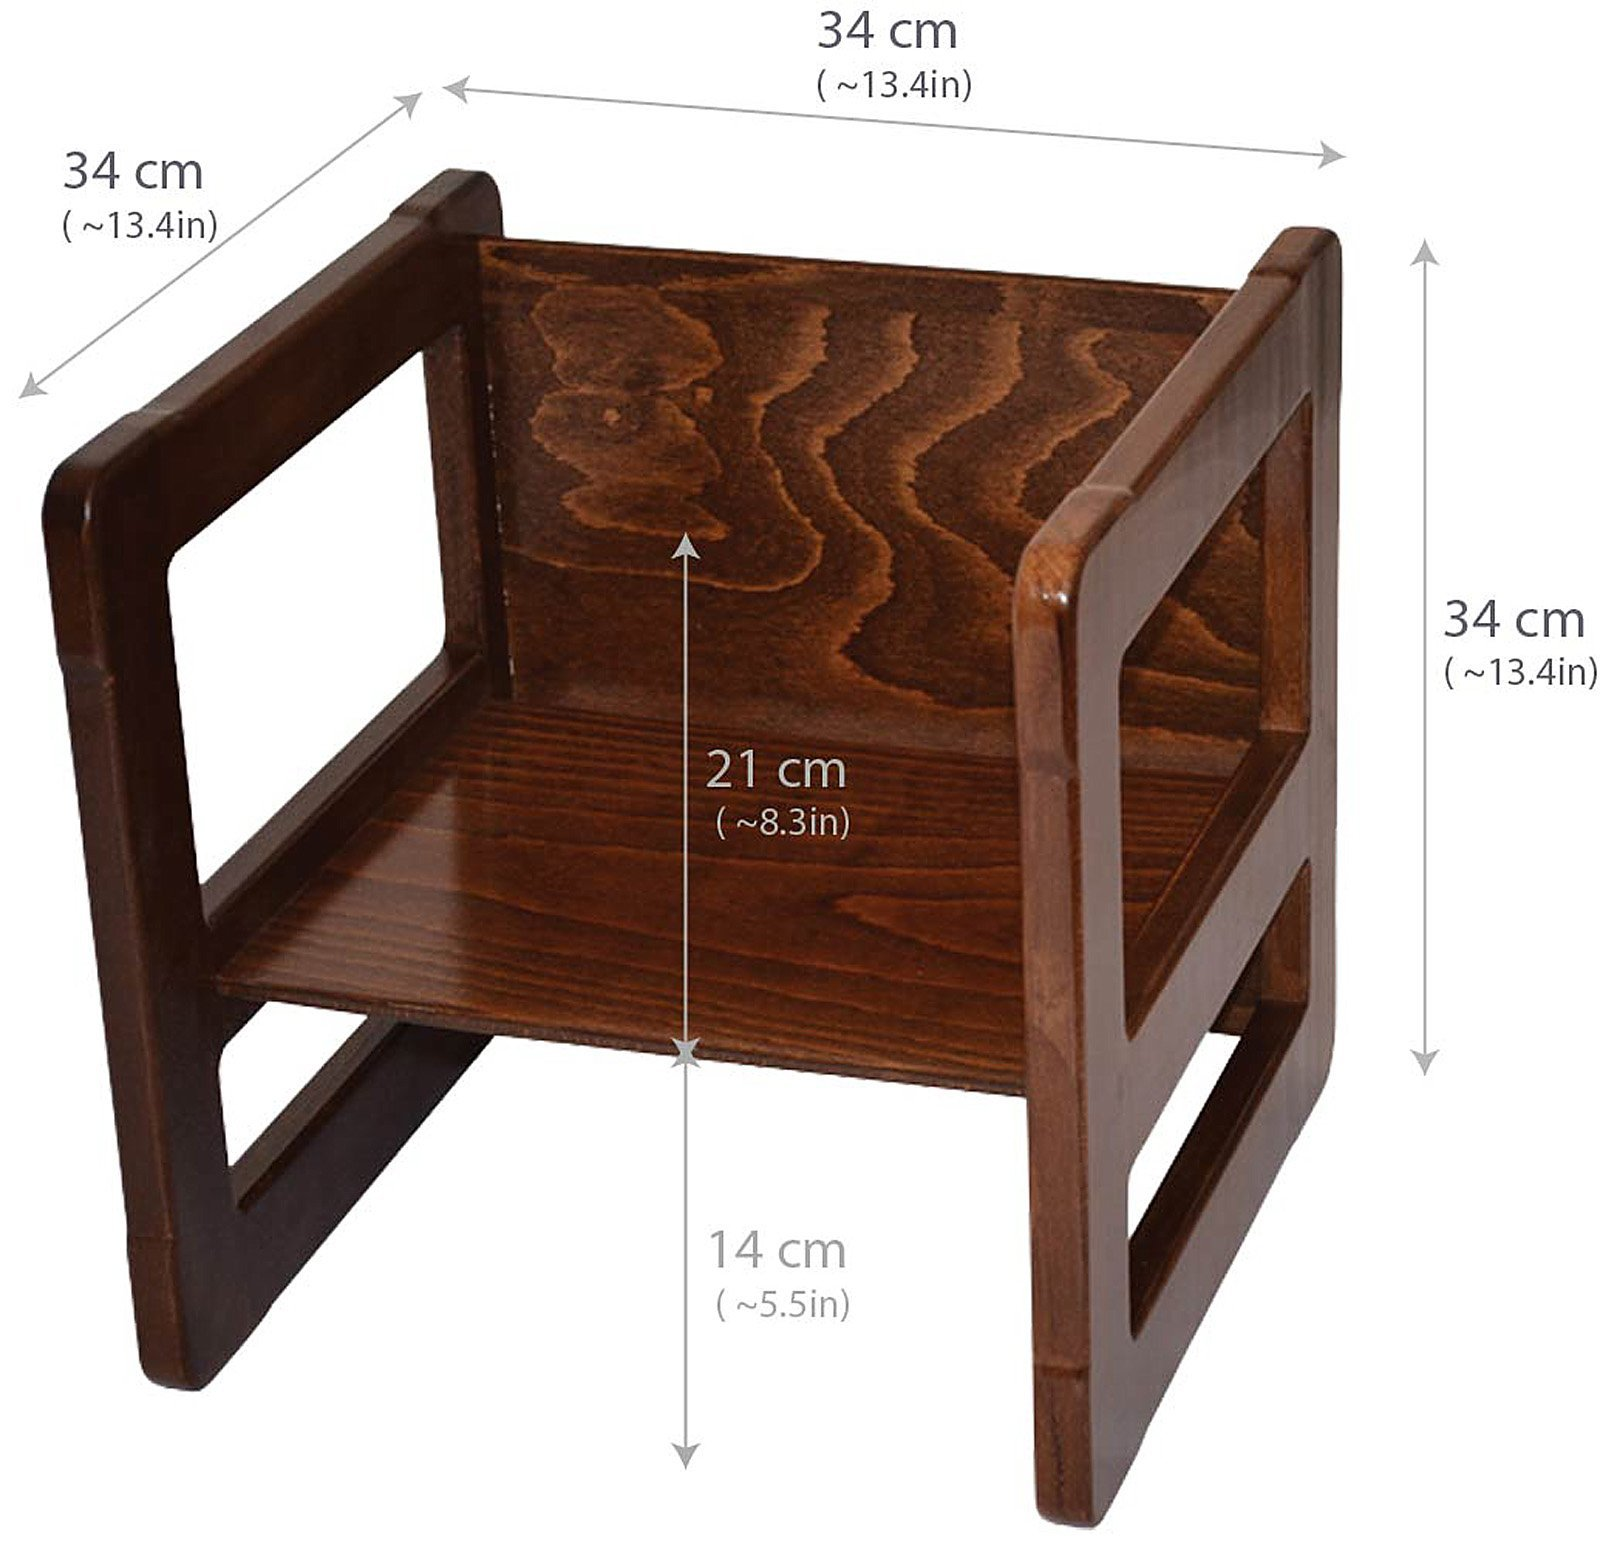 3 in 1 Childrens Multifunctional Furniture Set of 2, One Small Chair or Table and One Large Chair or Table Beech Wood, Dark Stained by Obique Ltd (Image #2)